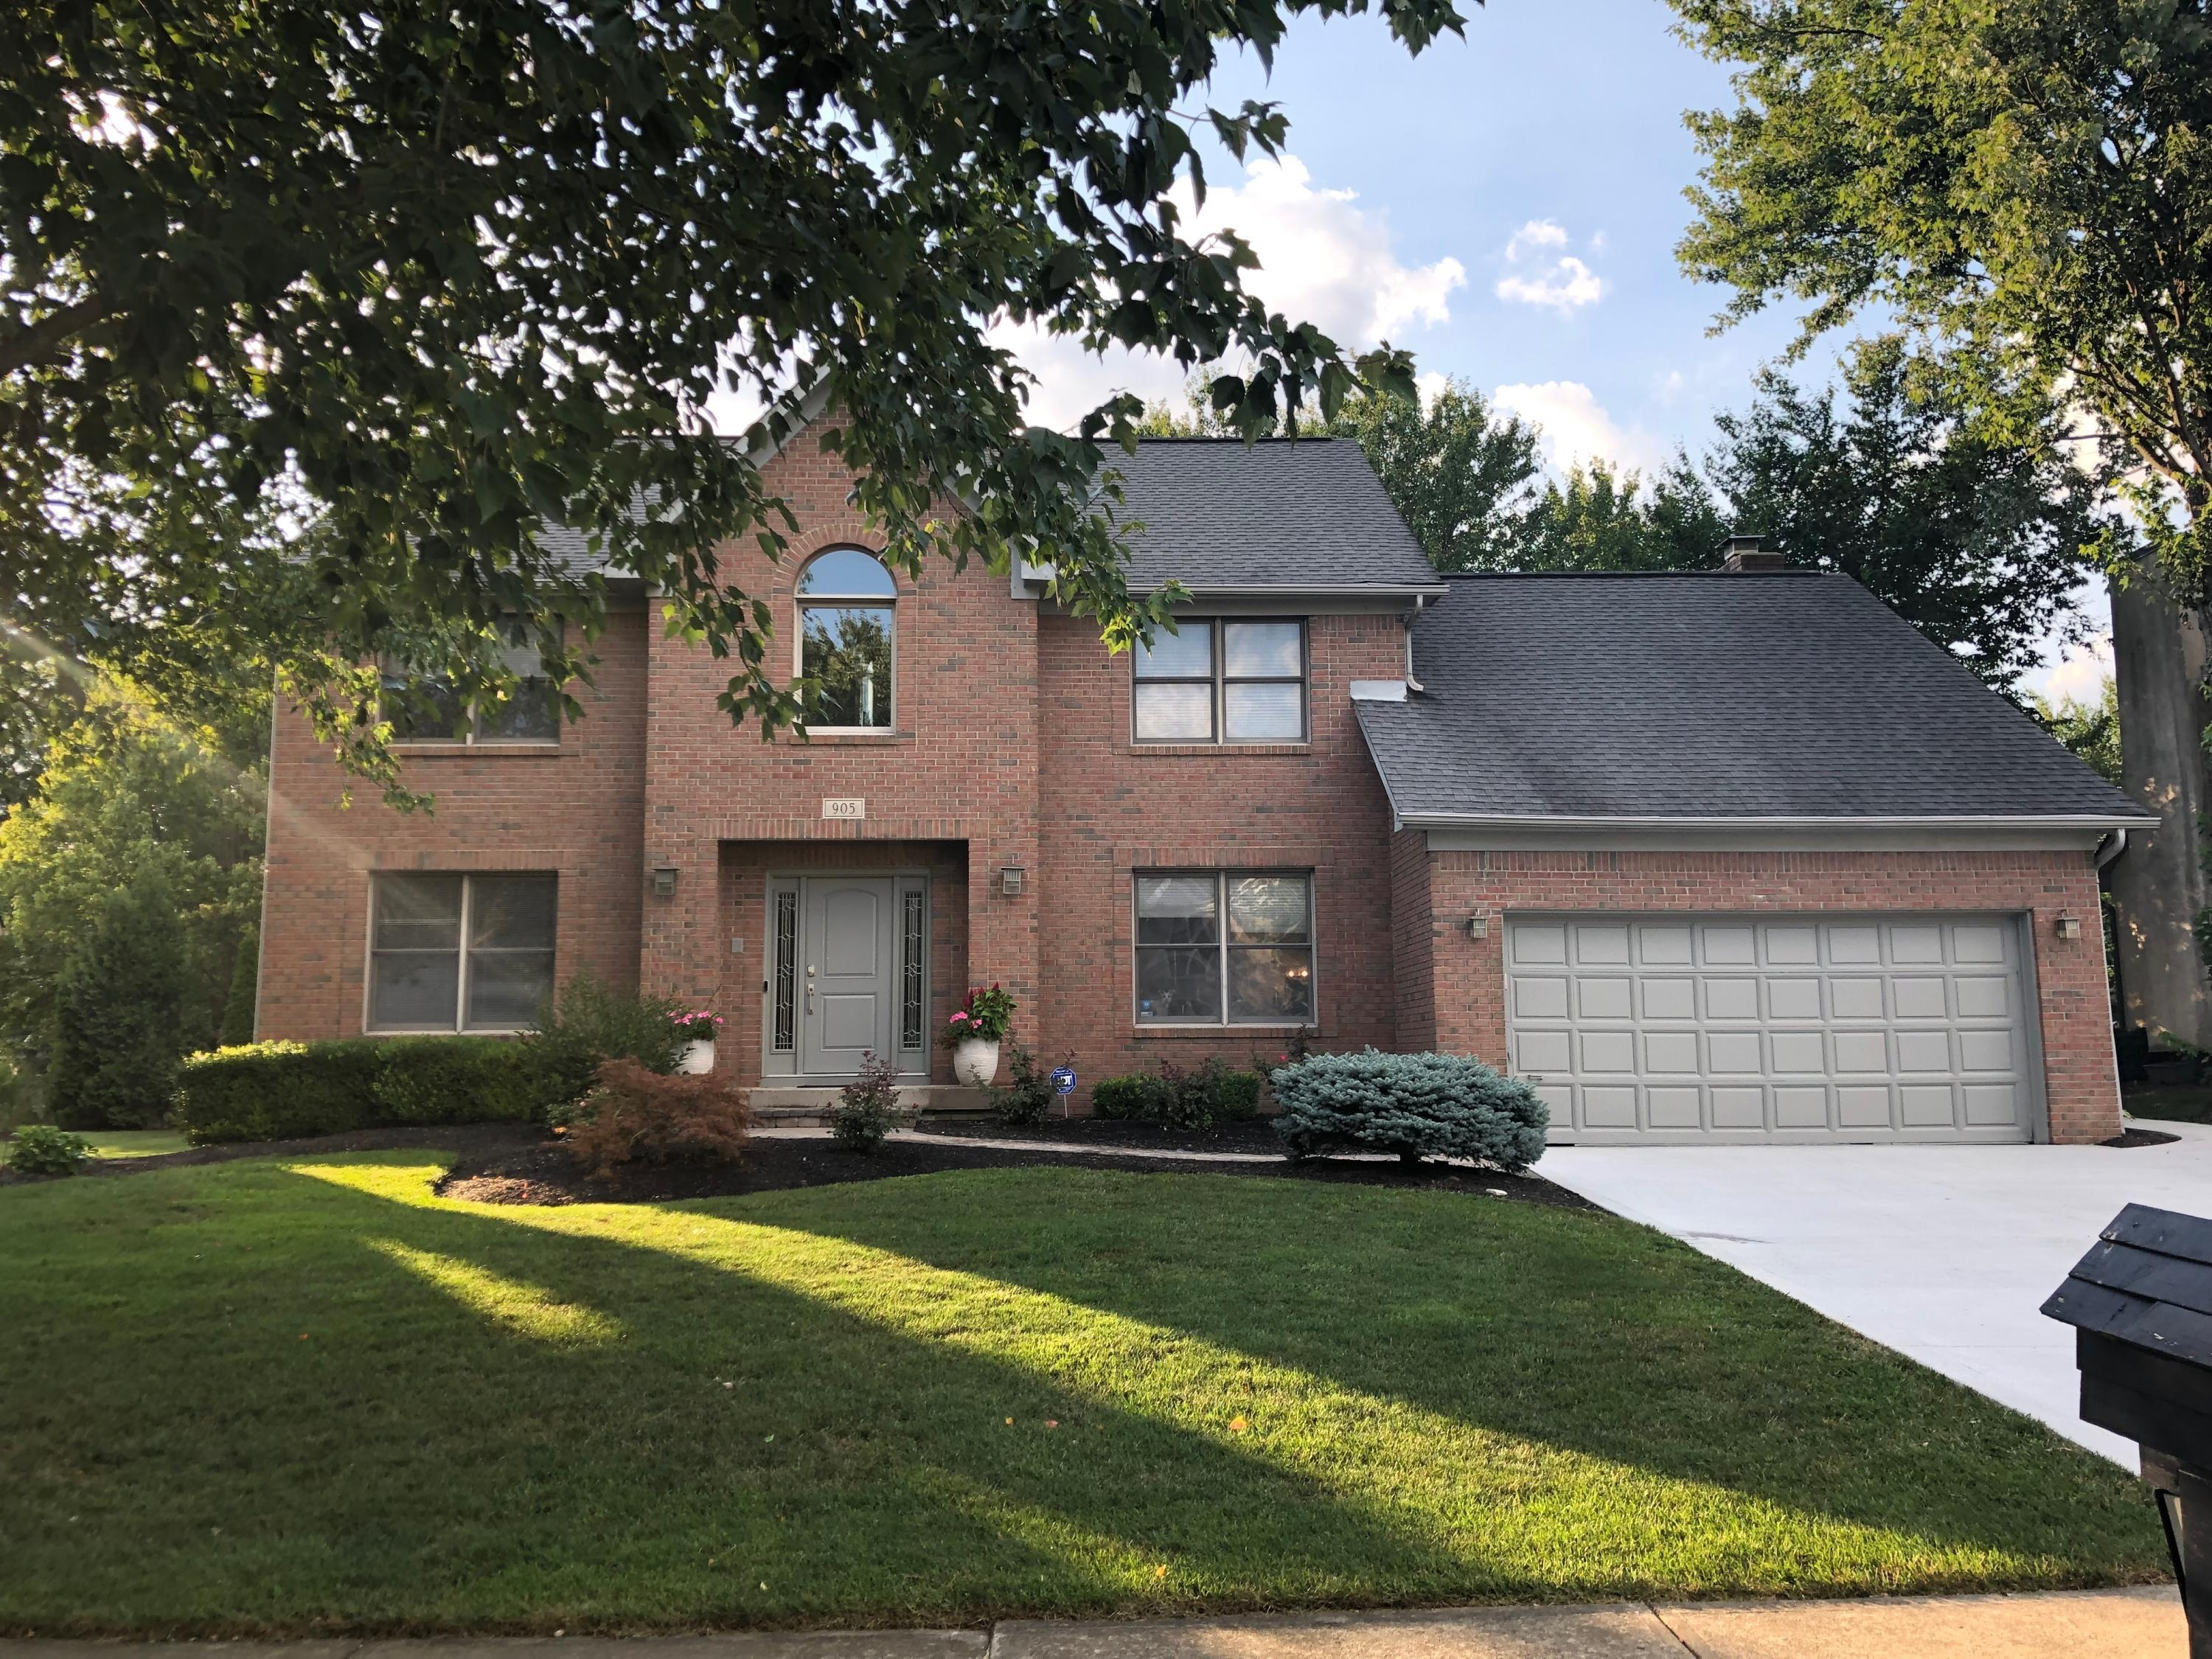 Photo of 905 Old Pine Drive, Gahanna, OH 43230